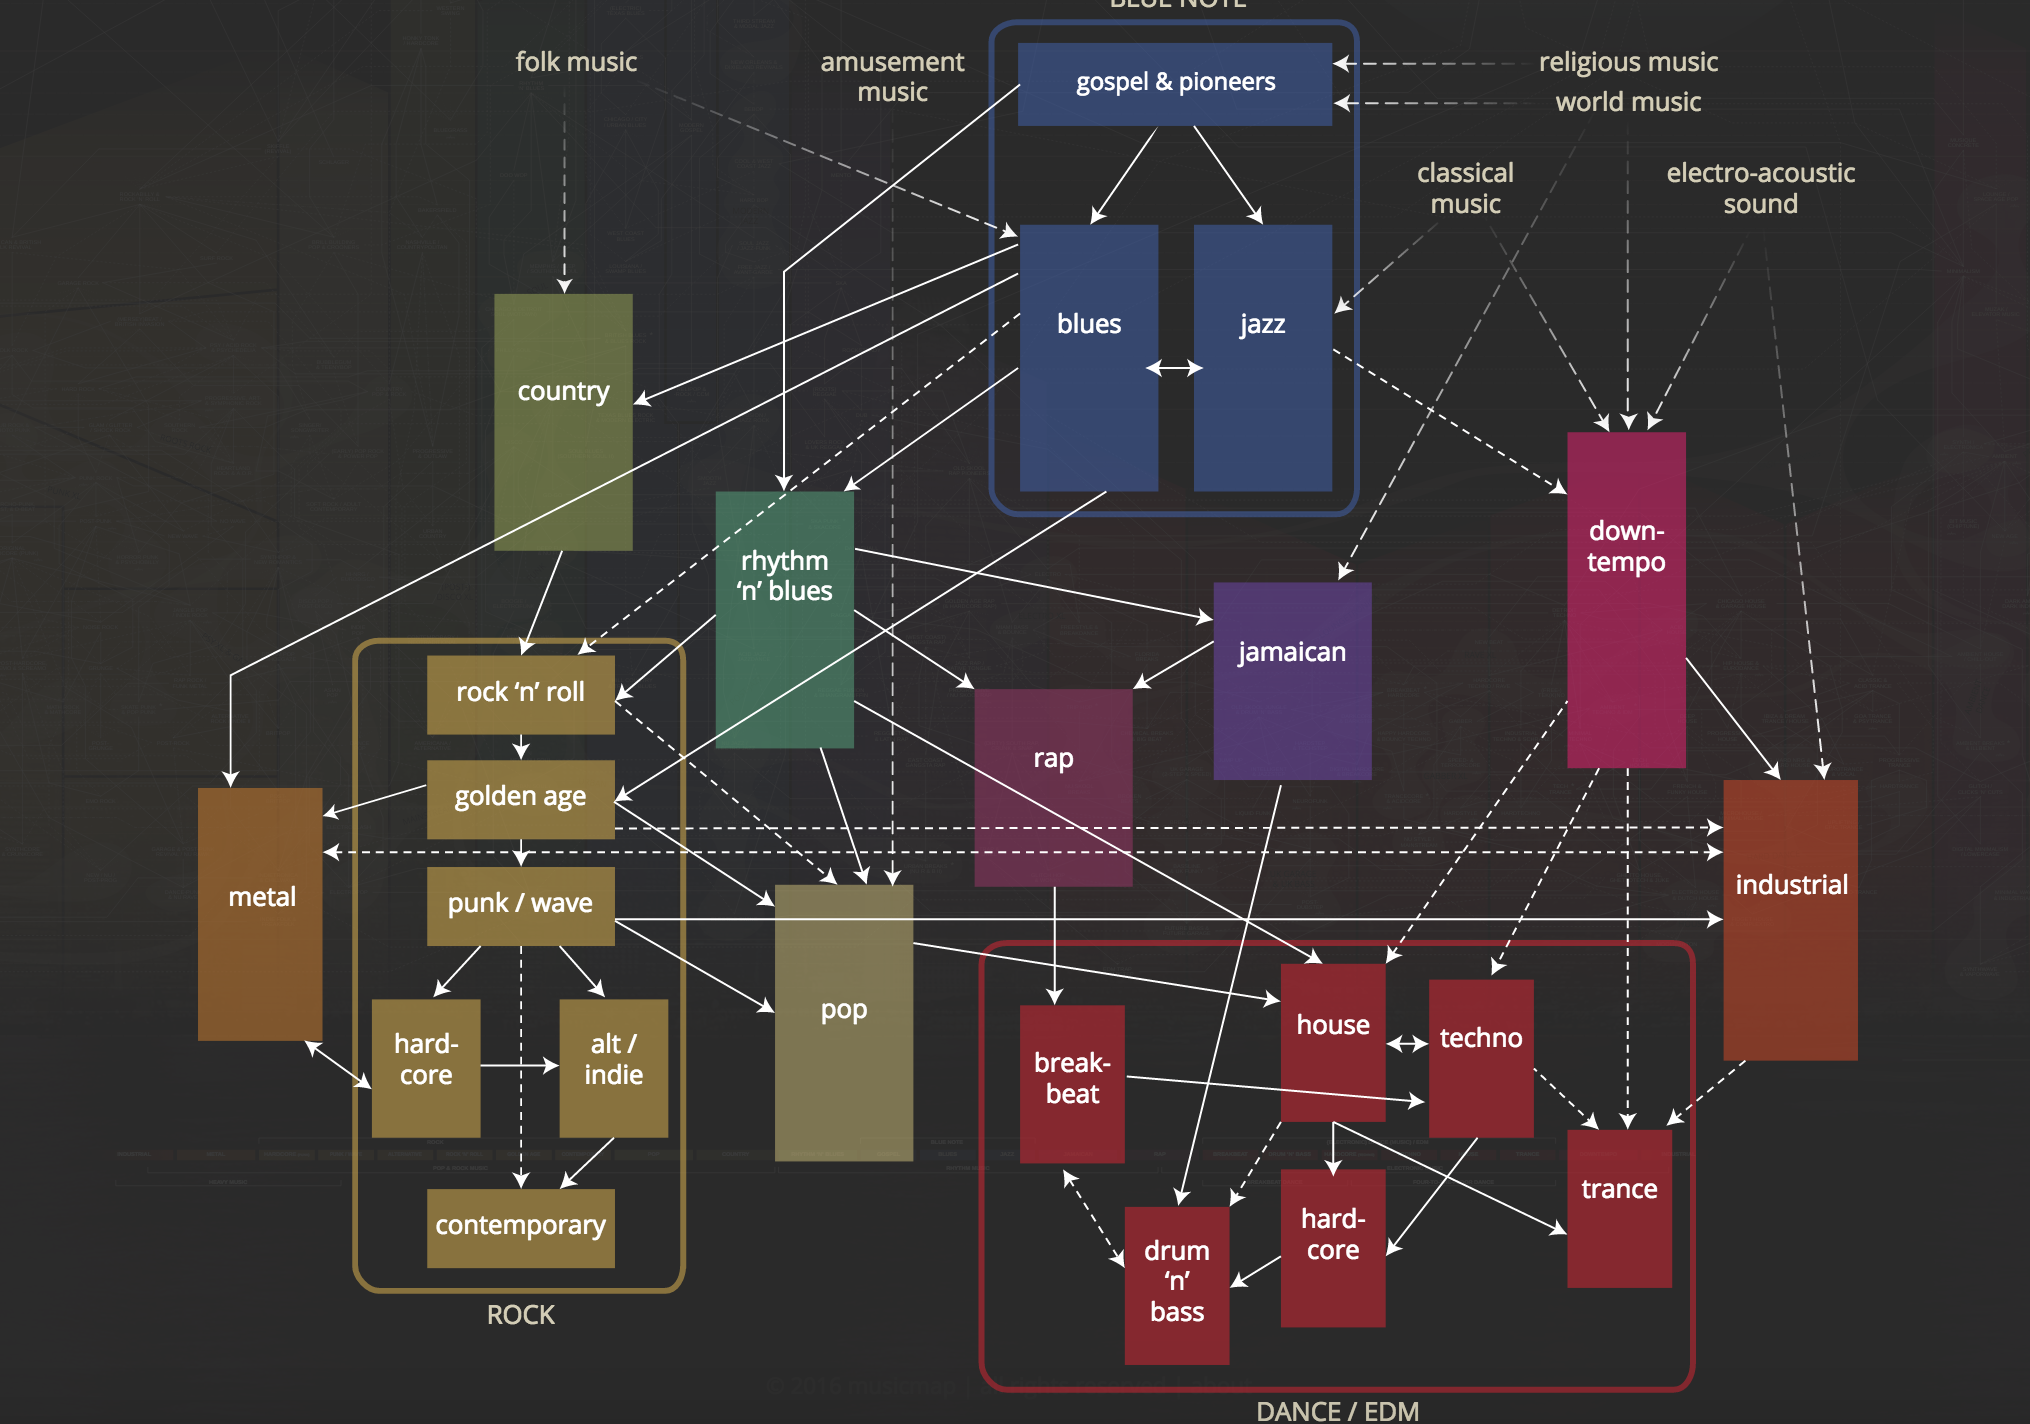 Musicmap is the Soulless Virtual Guide to